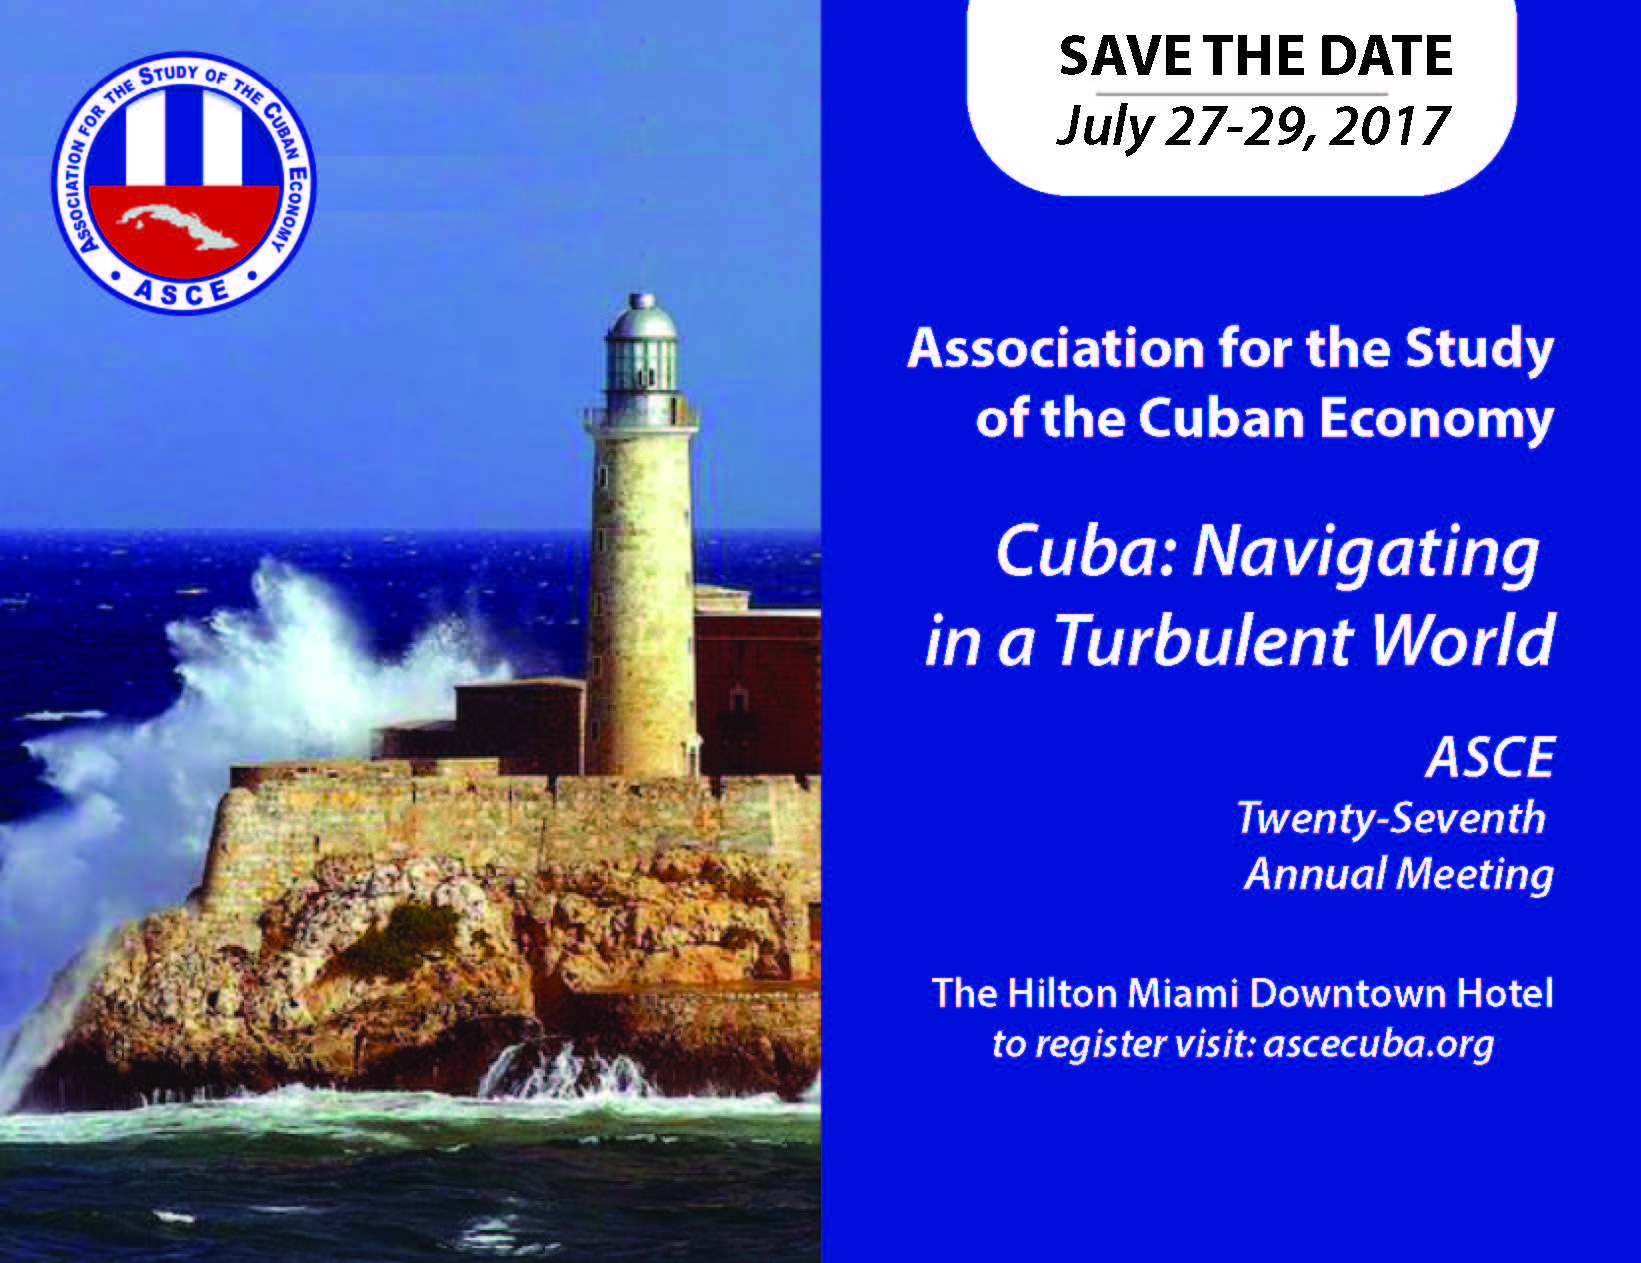 Save the date for ASCE 2017 conference